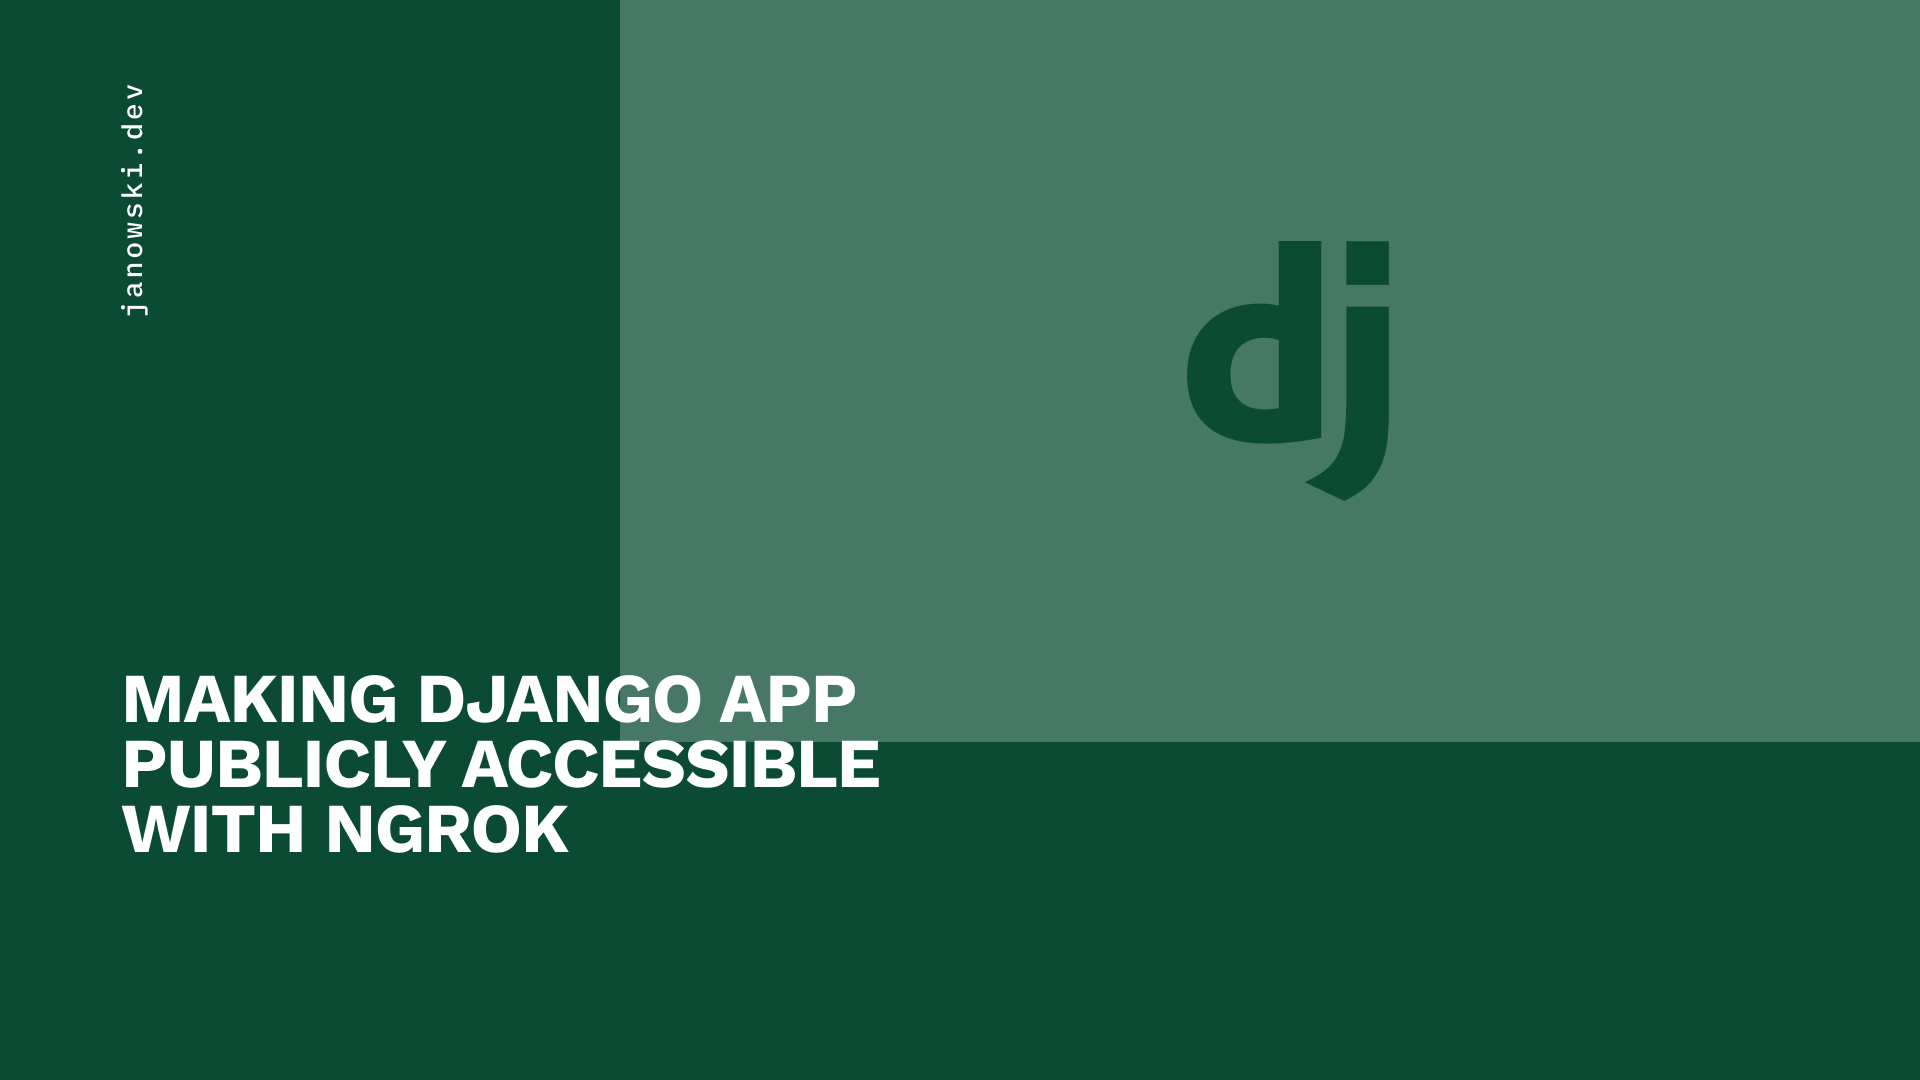 Making Django App publicly accessible with ngrok